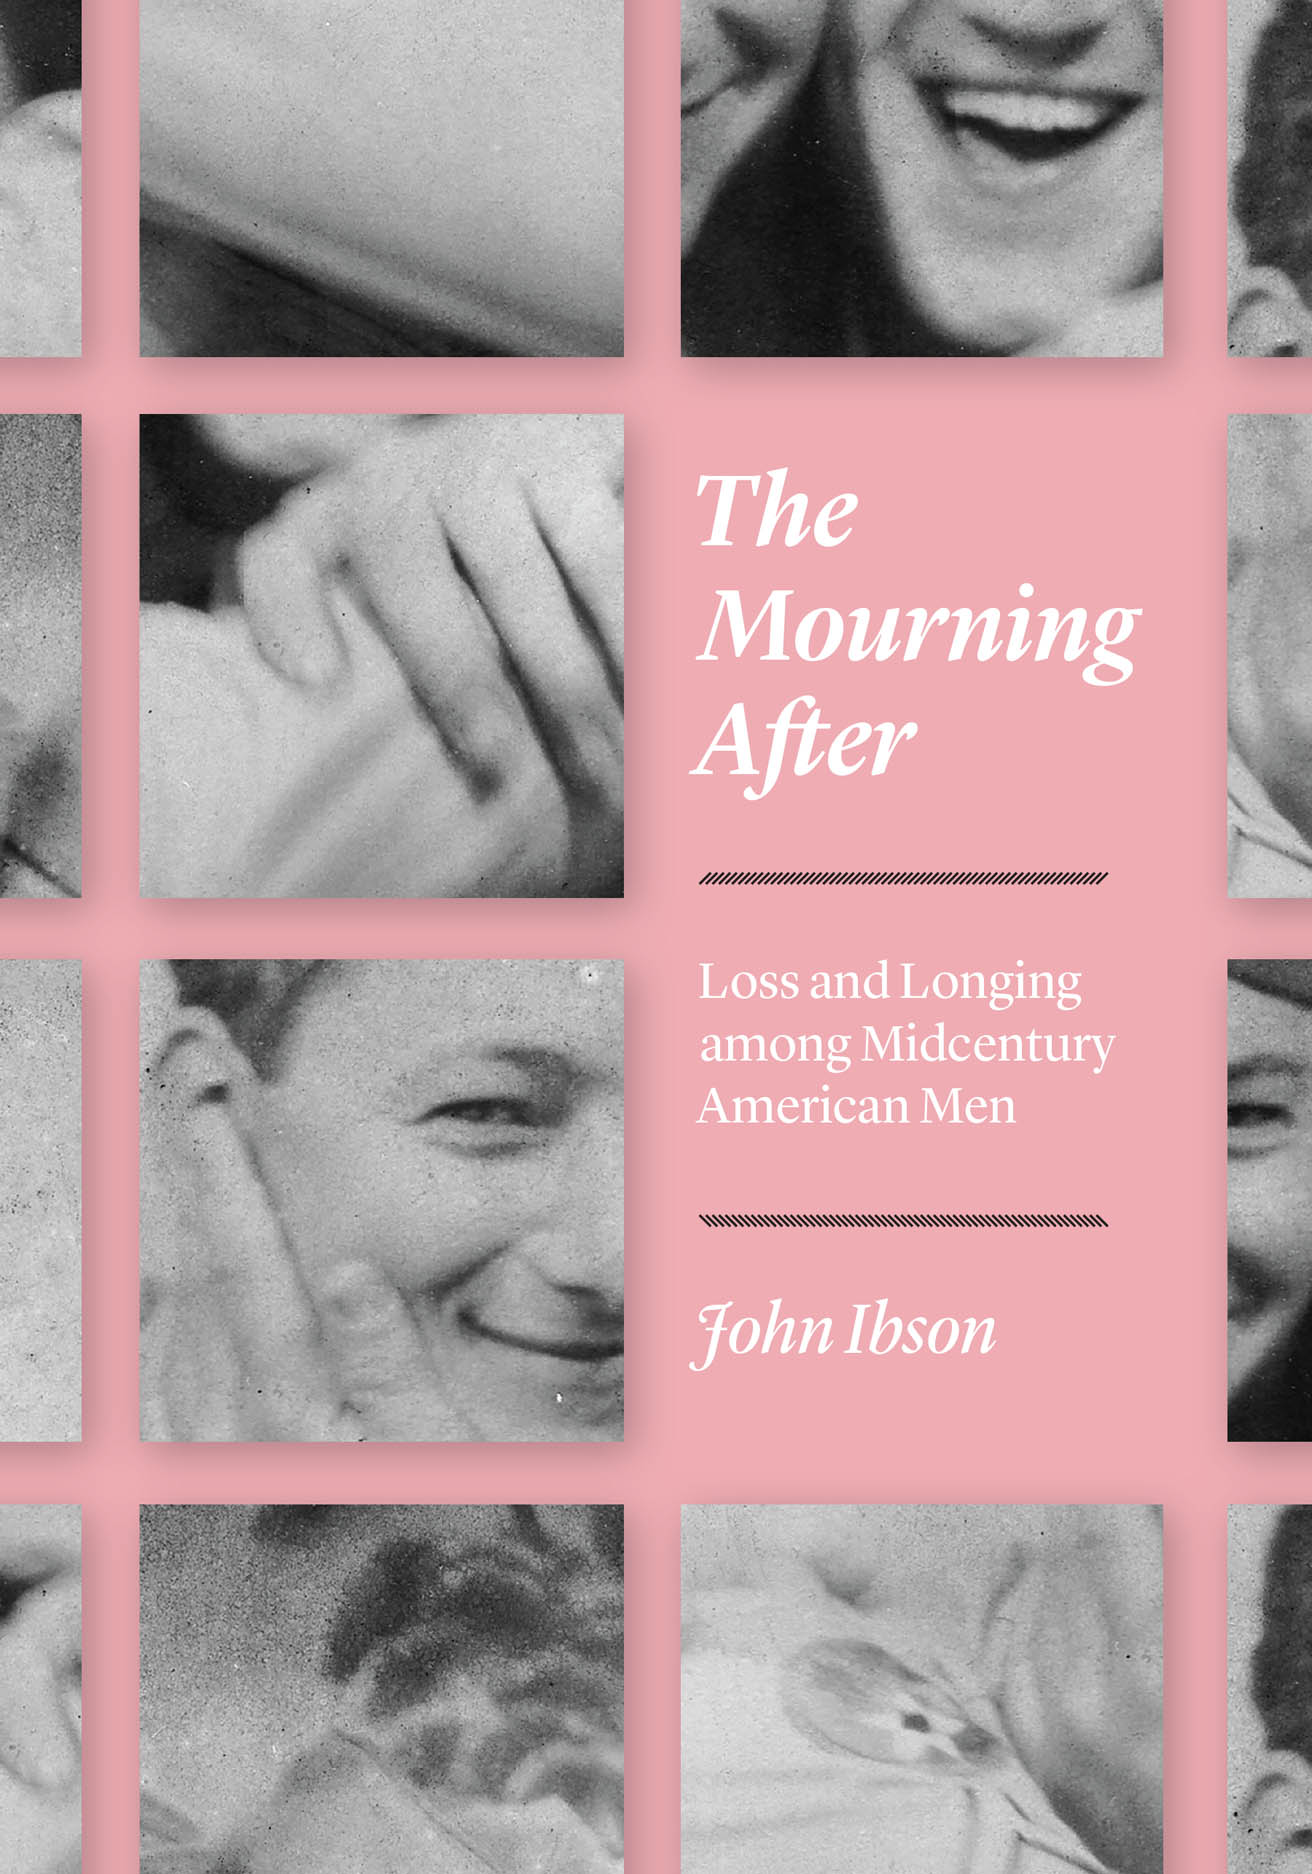 The Mourning After: Loss and Longing among Midcentury American Men